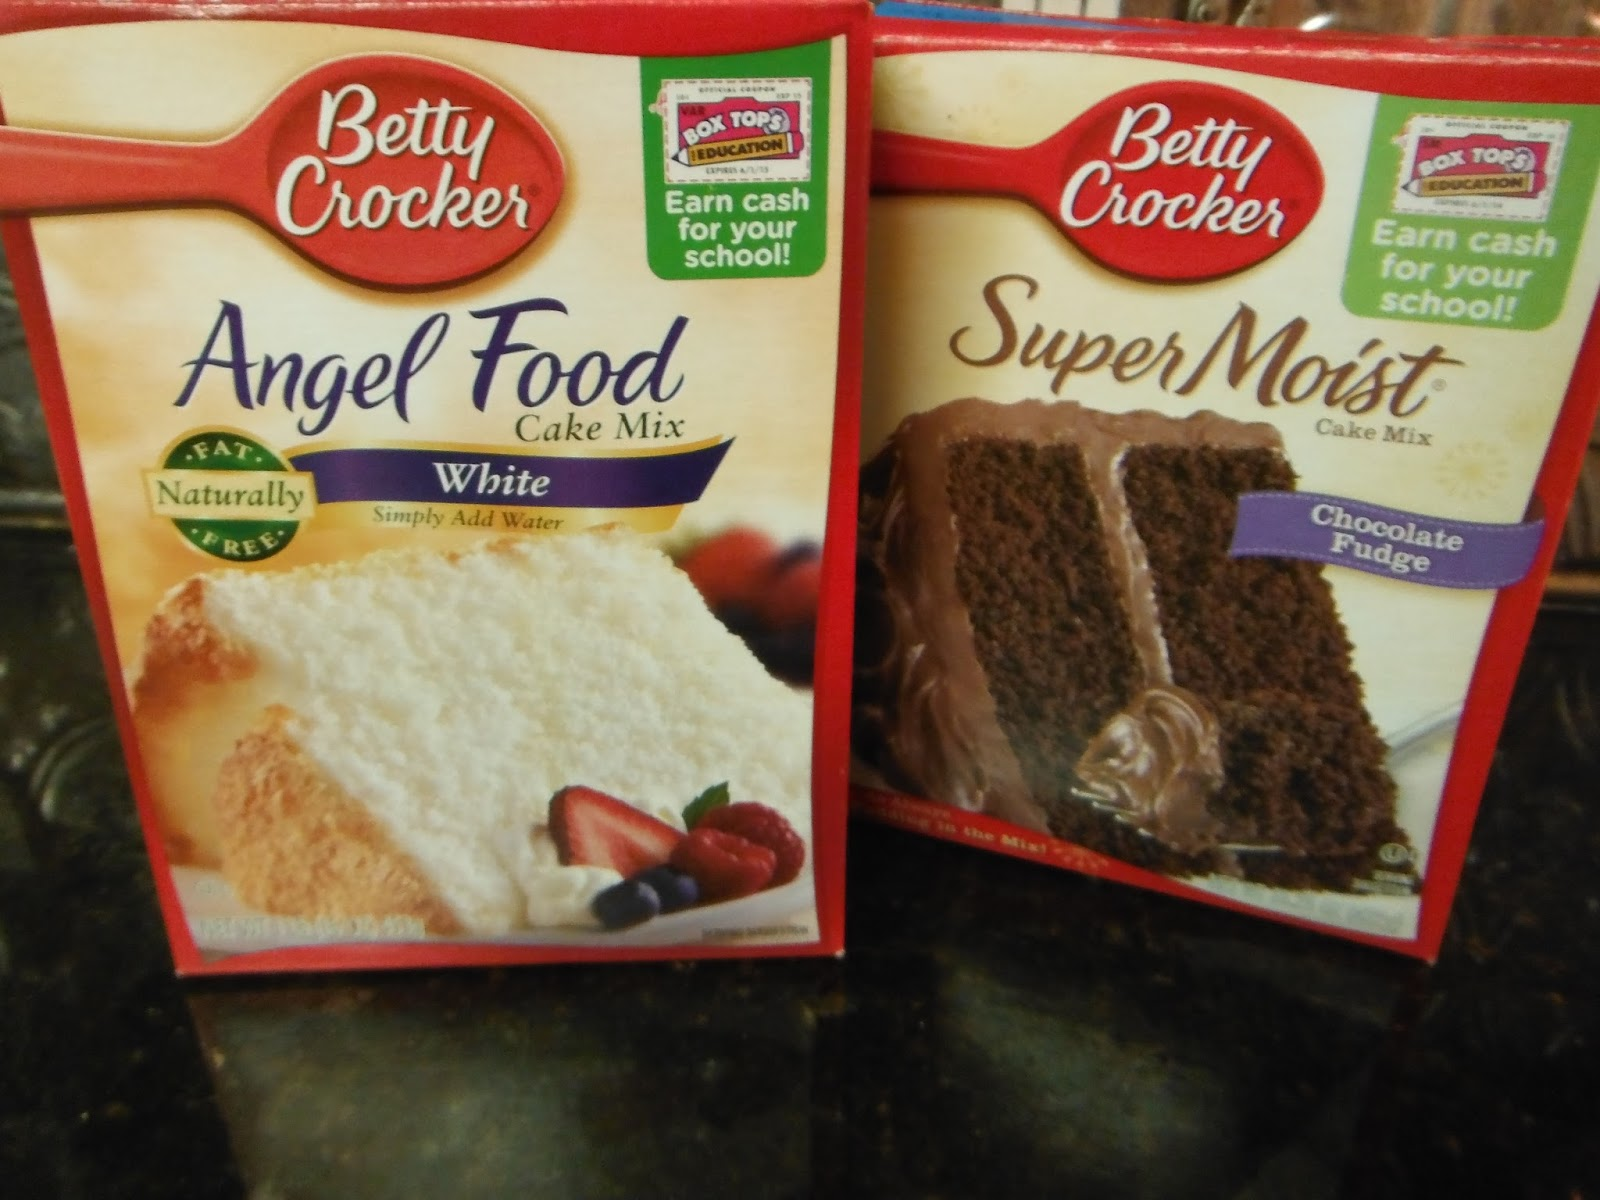 Diy Angel Food Cake Mix Start With an Angel Food Mix